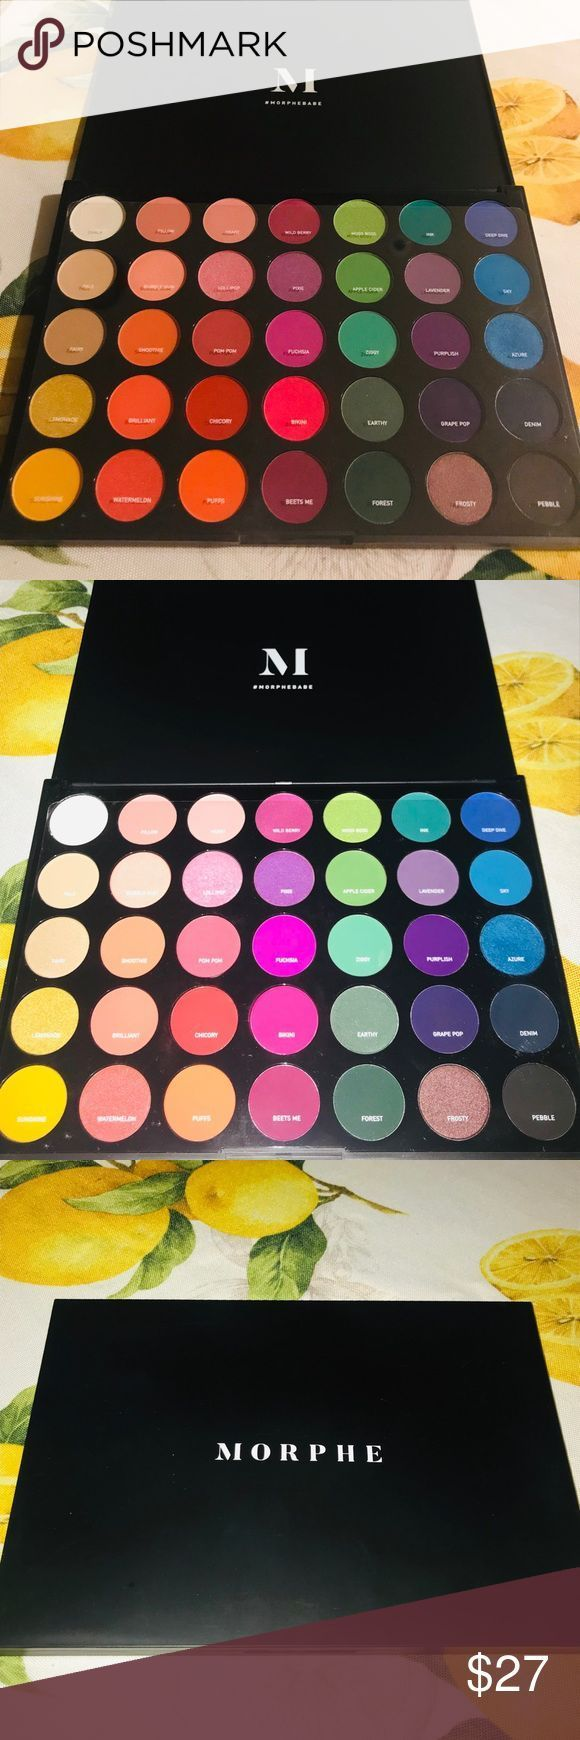 MORPHE 35B COLOR BURST ARTISTRY PALETTE Only been used one time Not availaBeaSkincare